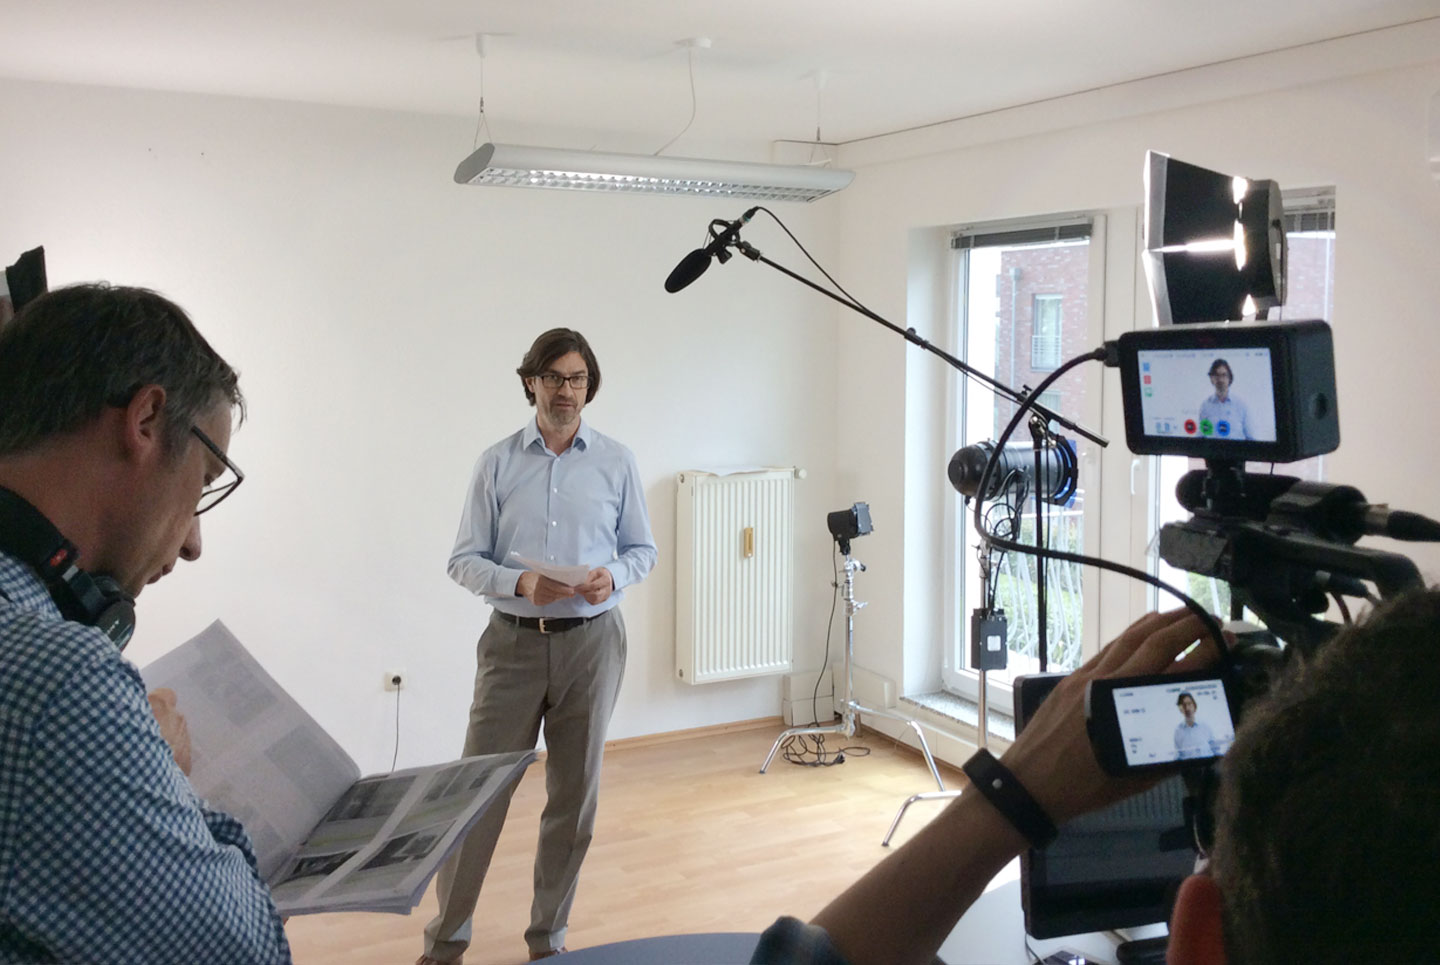 Making of: An exciting Video shoot for DigiPara